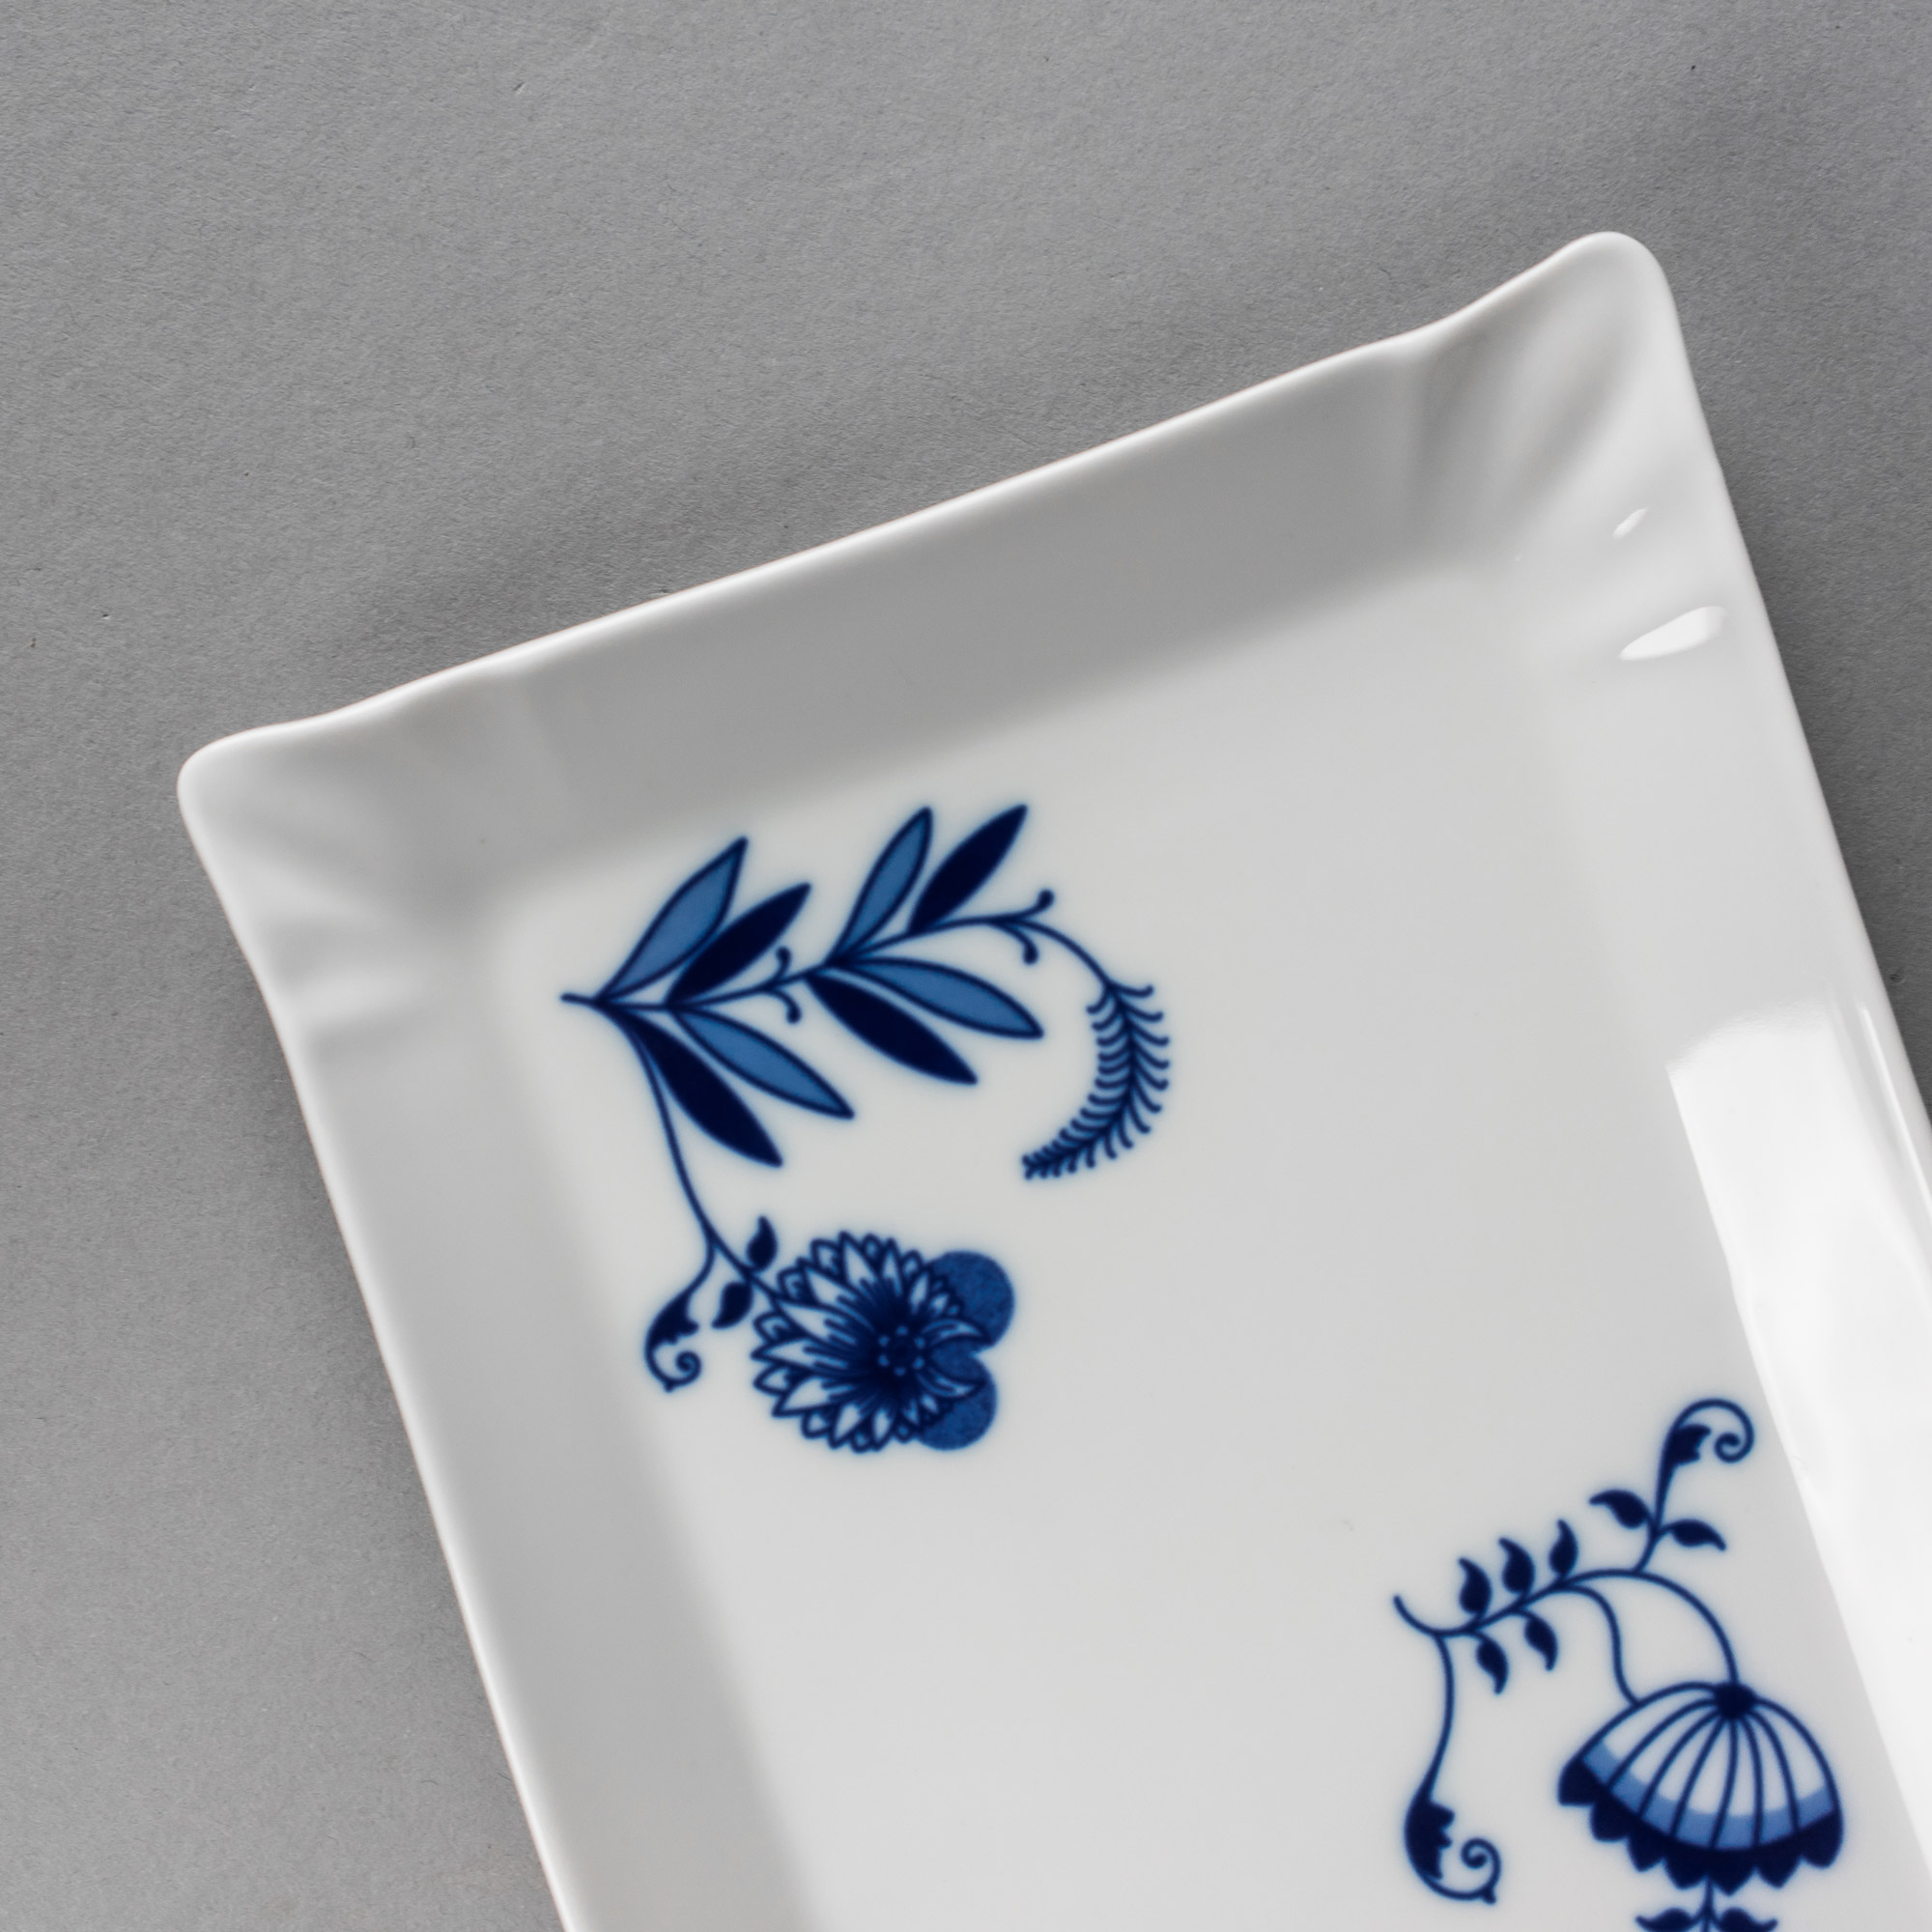 Onion pattern serving tray by Qubus